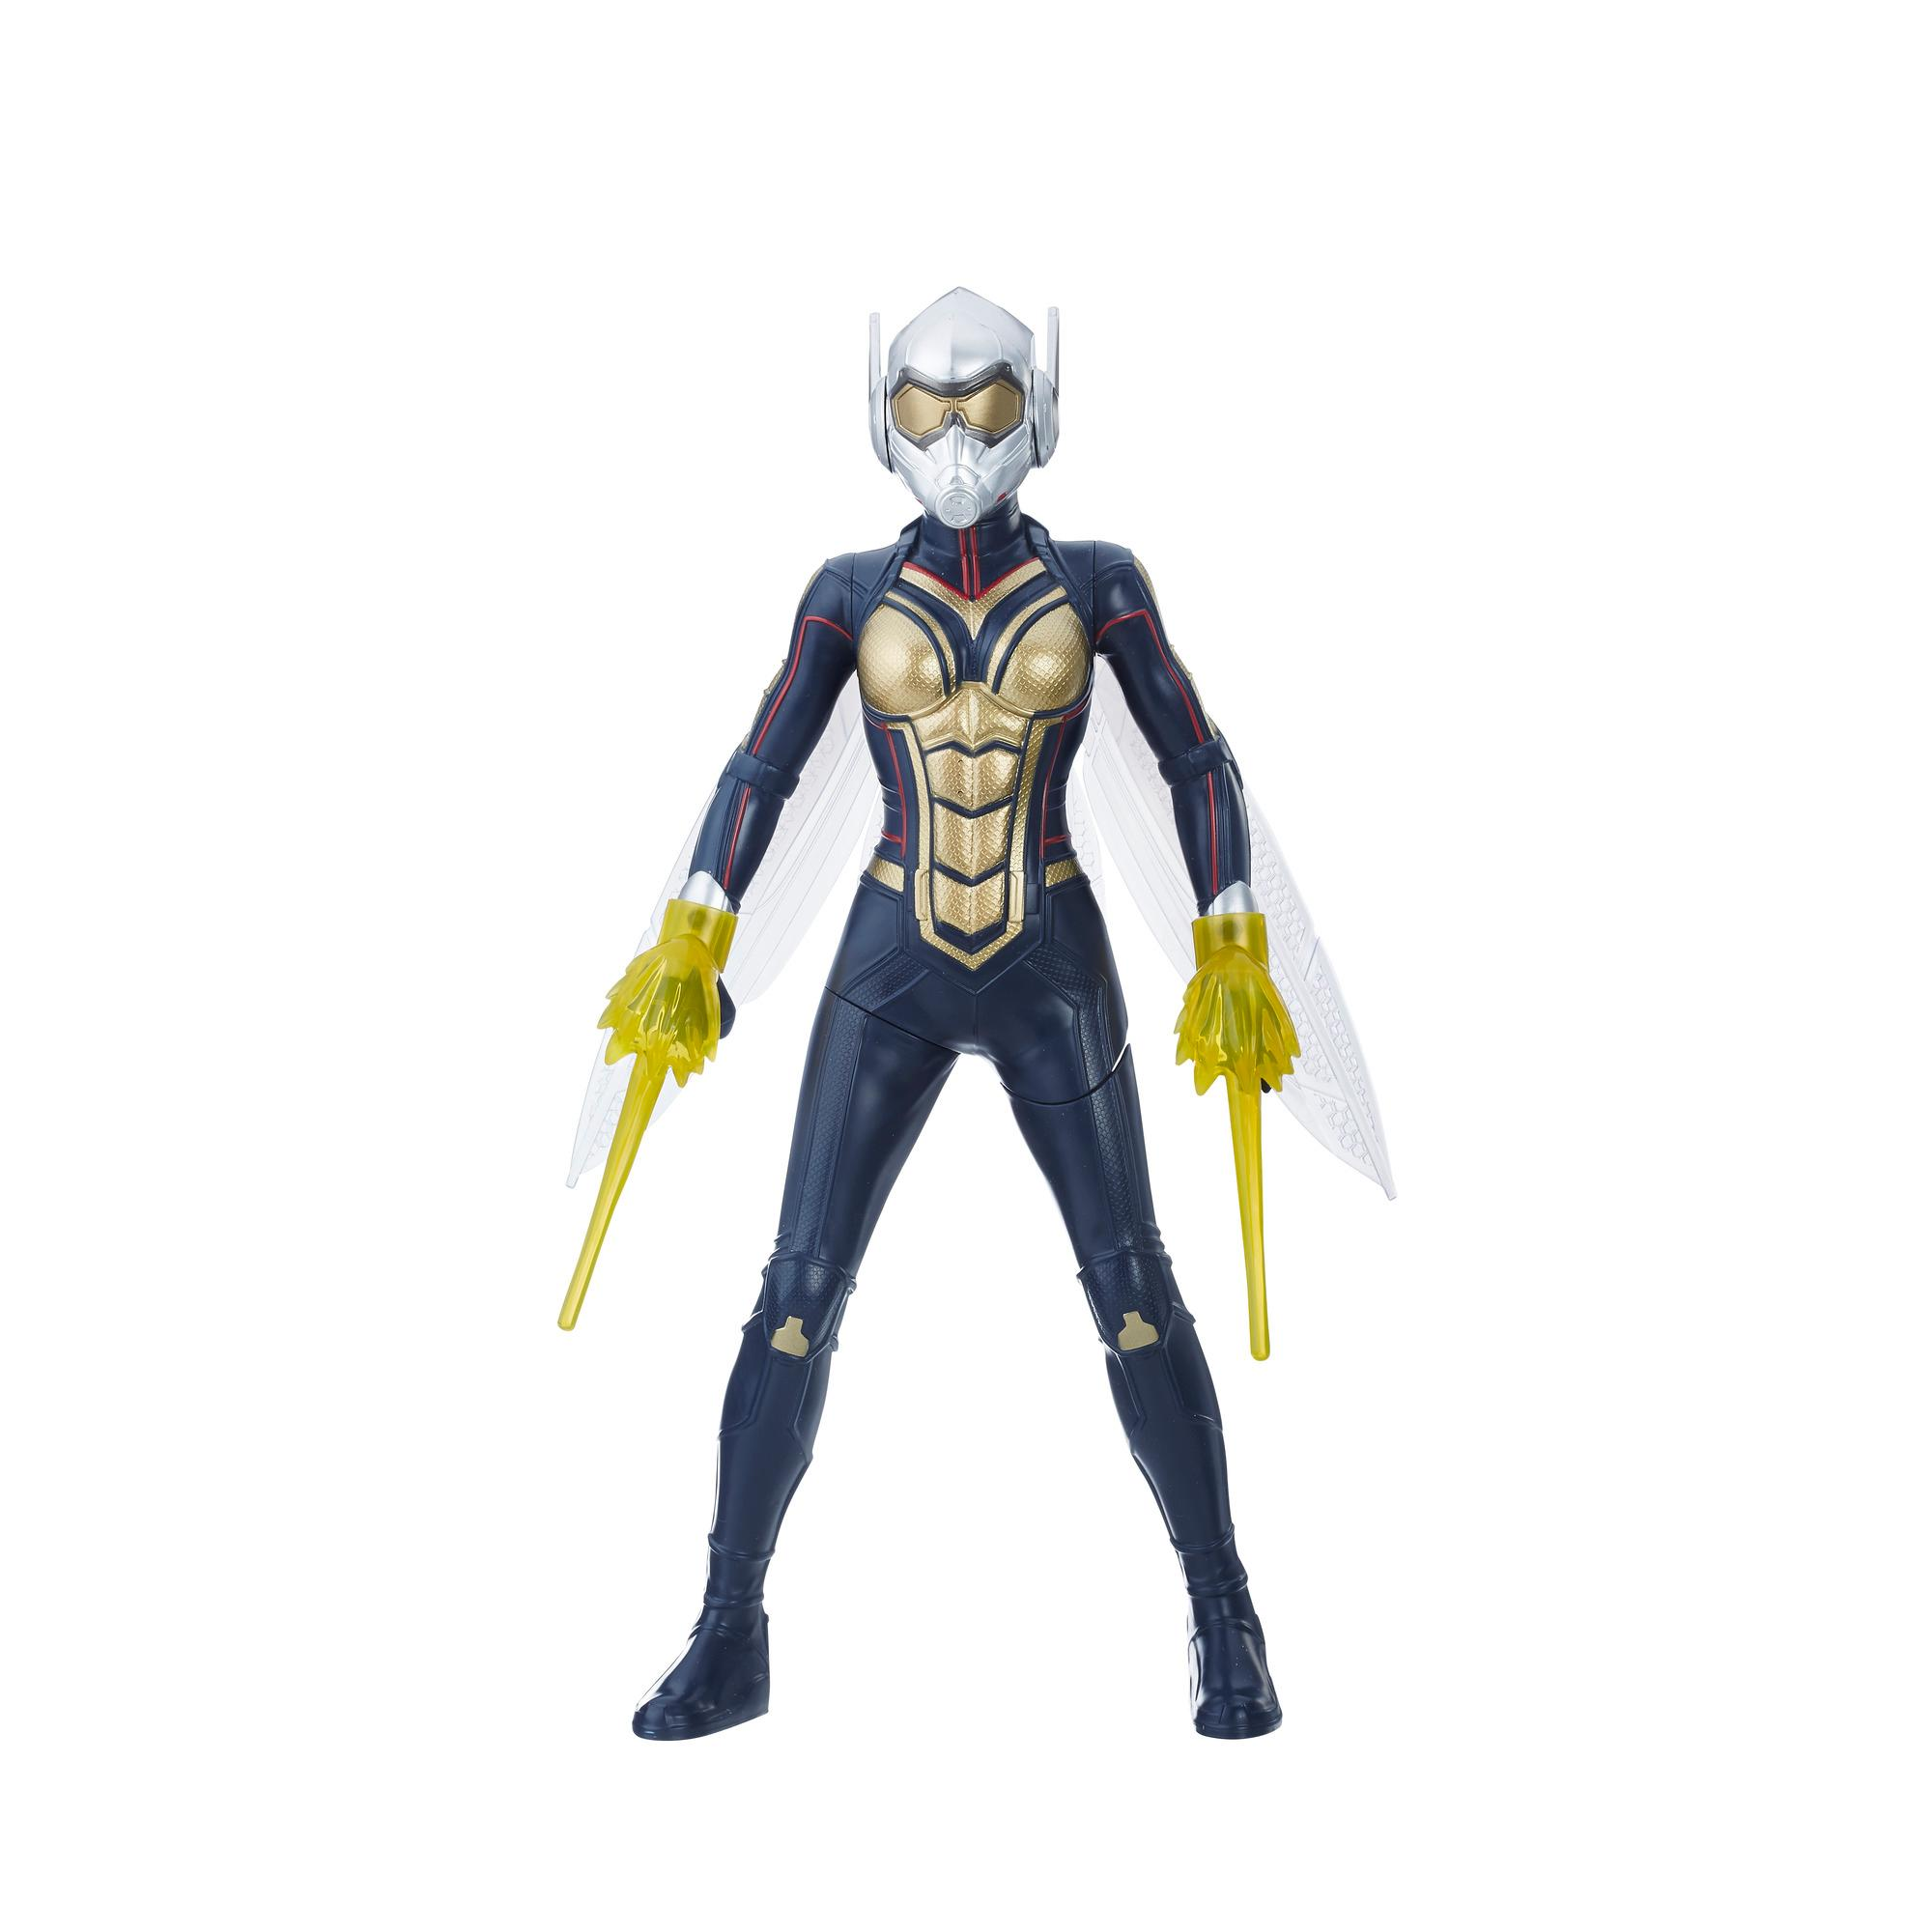 ANT MAN - FIGURINE WASP 35CM A FONCTION